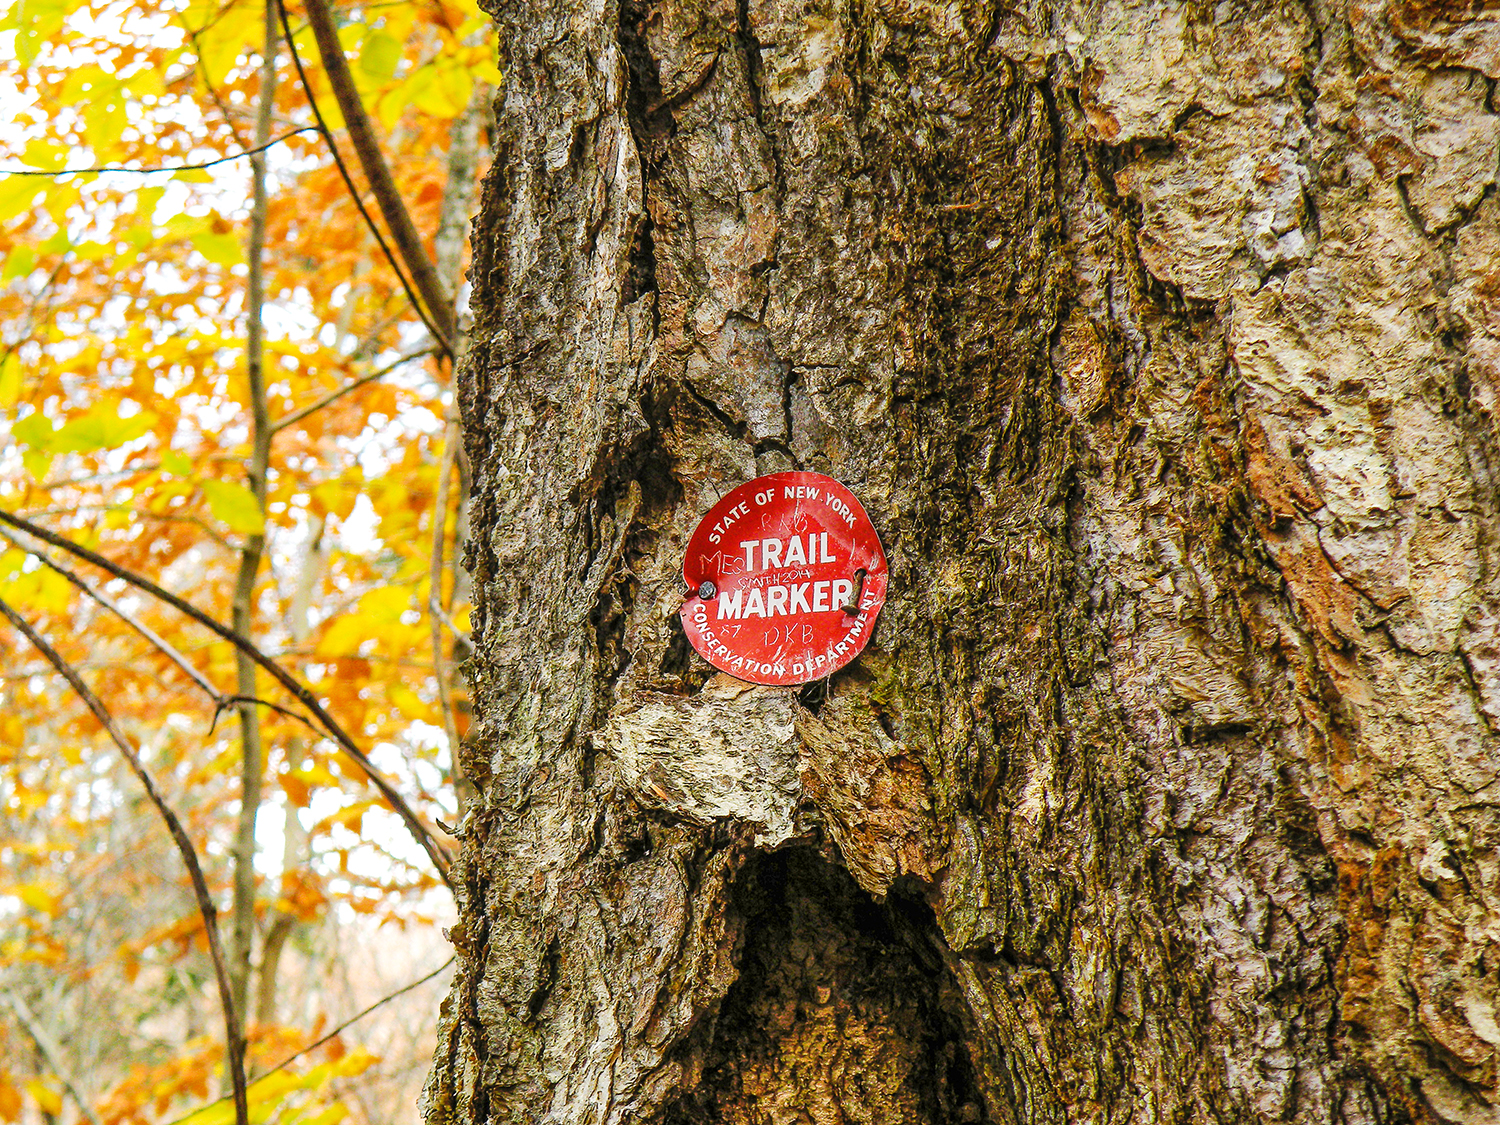 You may spot One of the old Metal trail markers that were in vogue half a century ago.  Bill Ingersoll